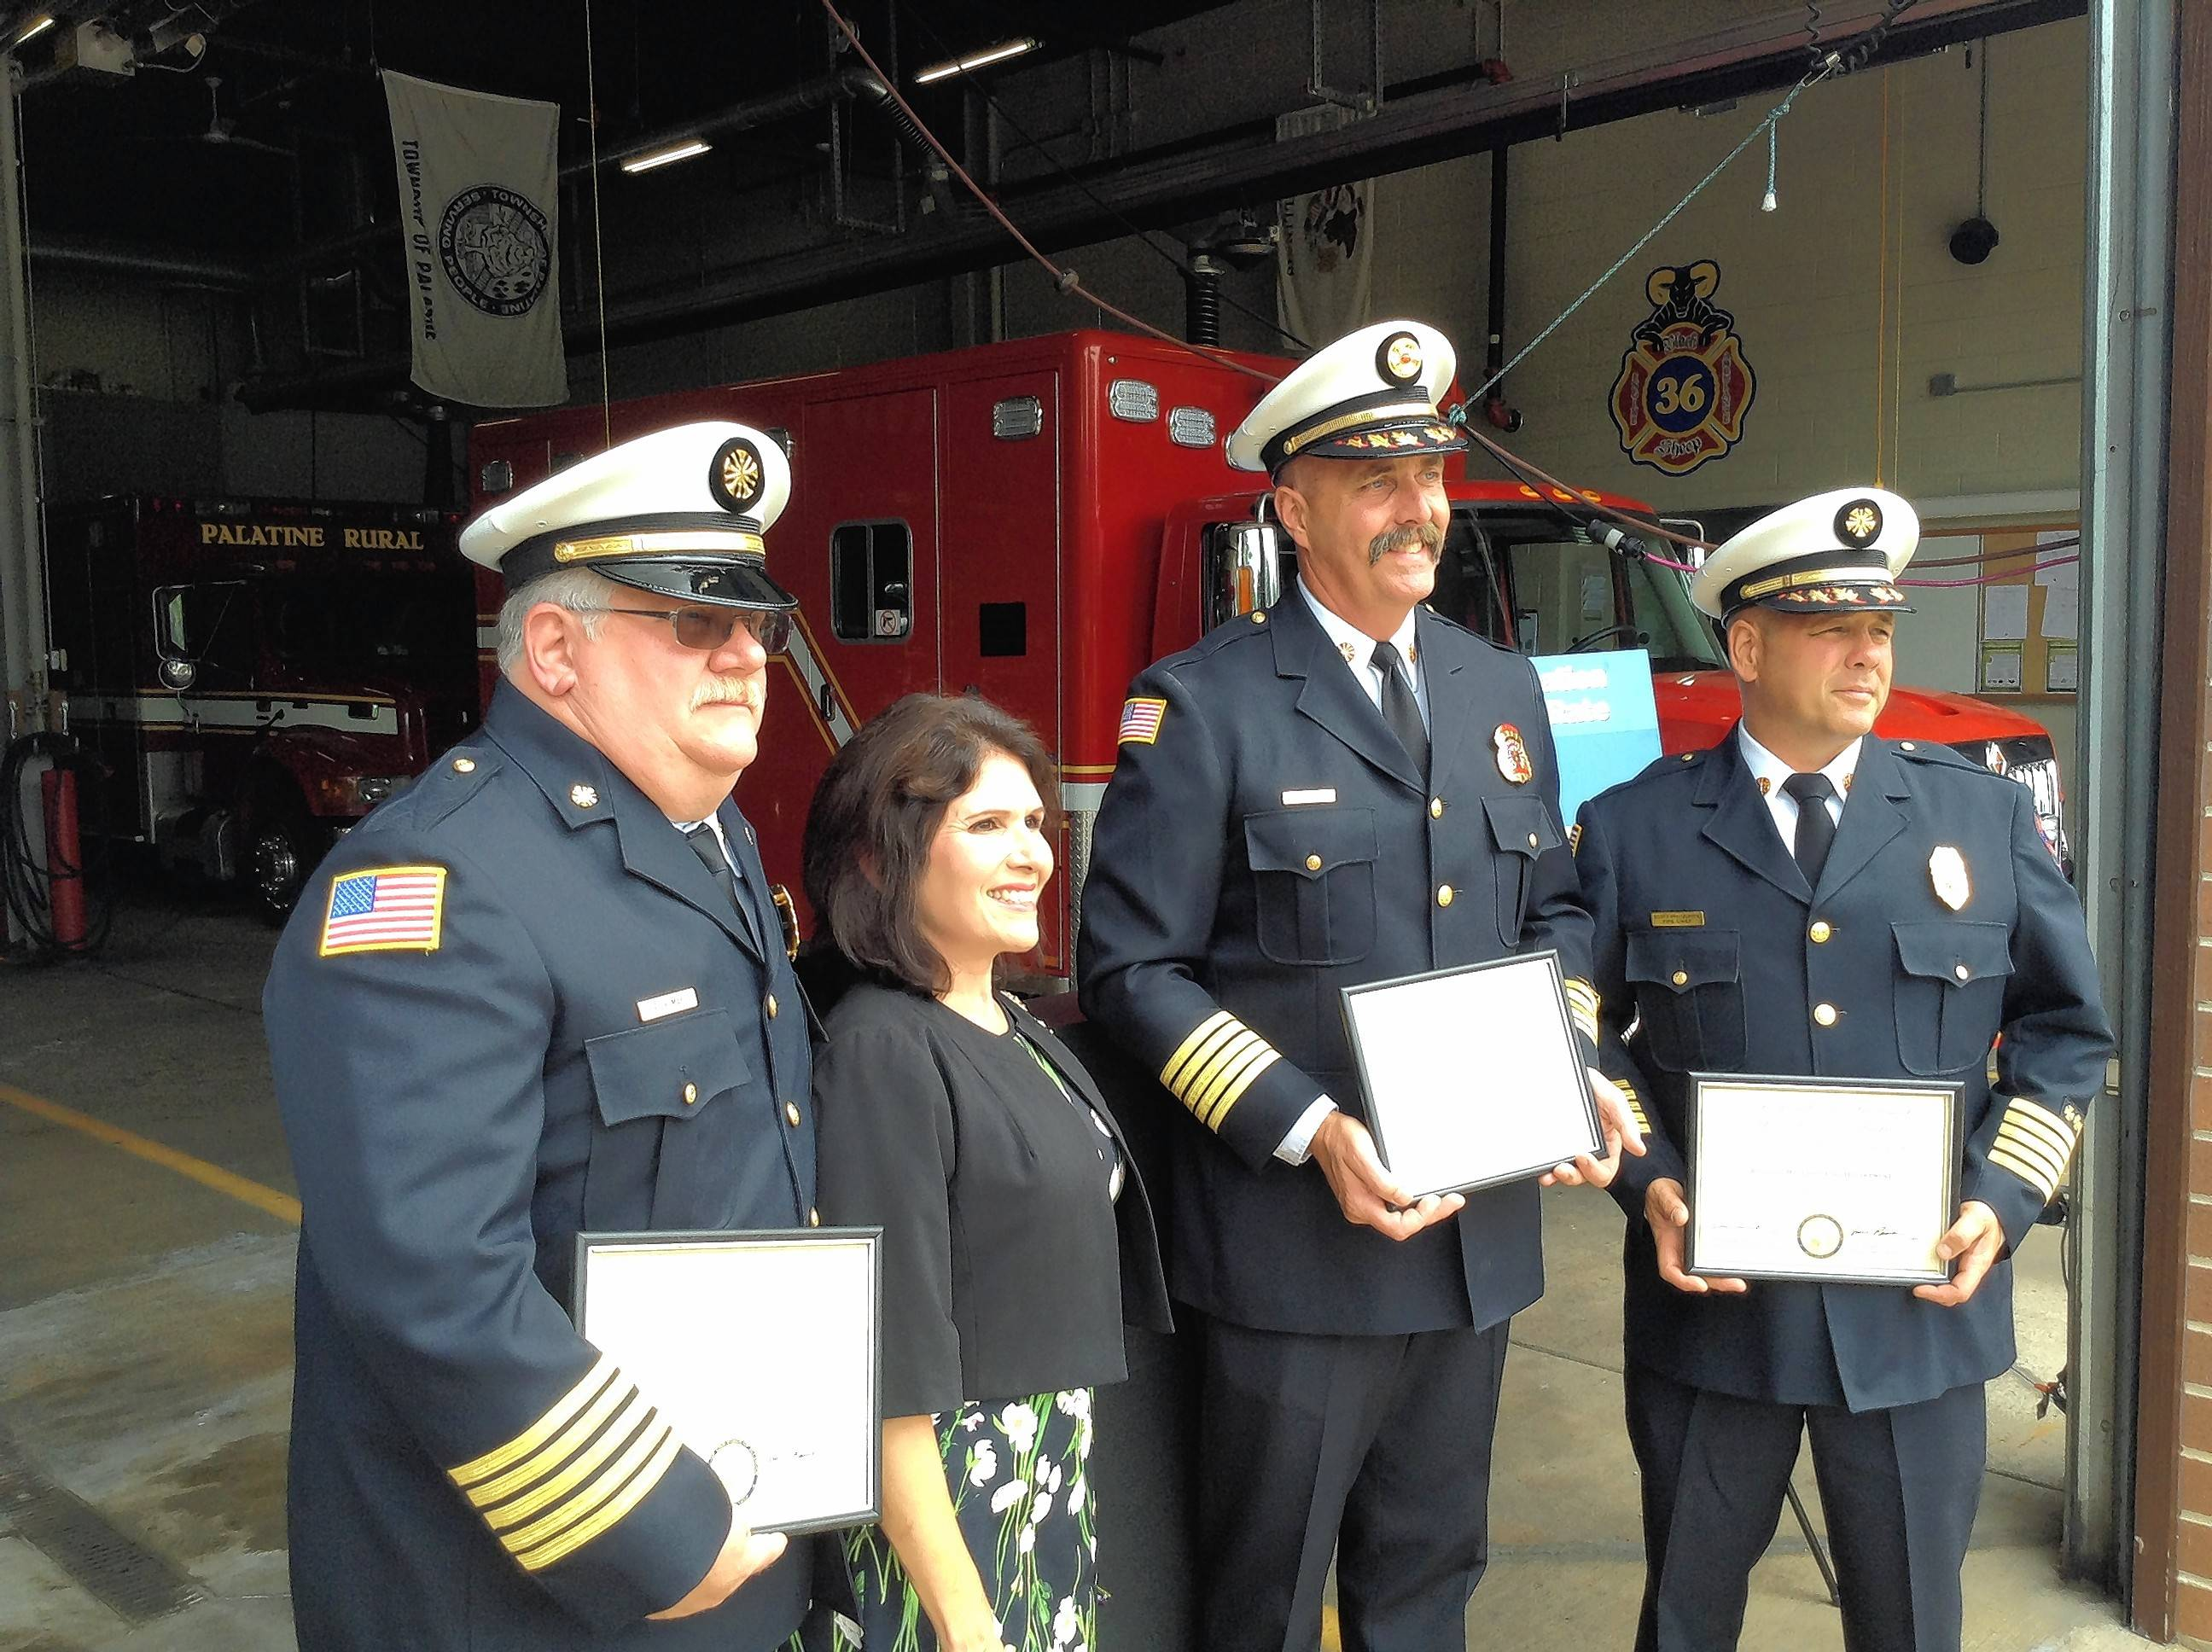 Sanguinetti praises three fire departments for pooling resources